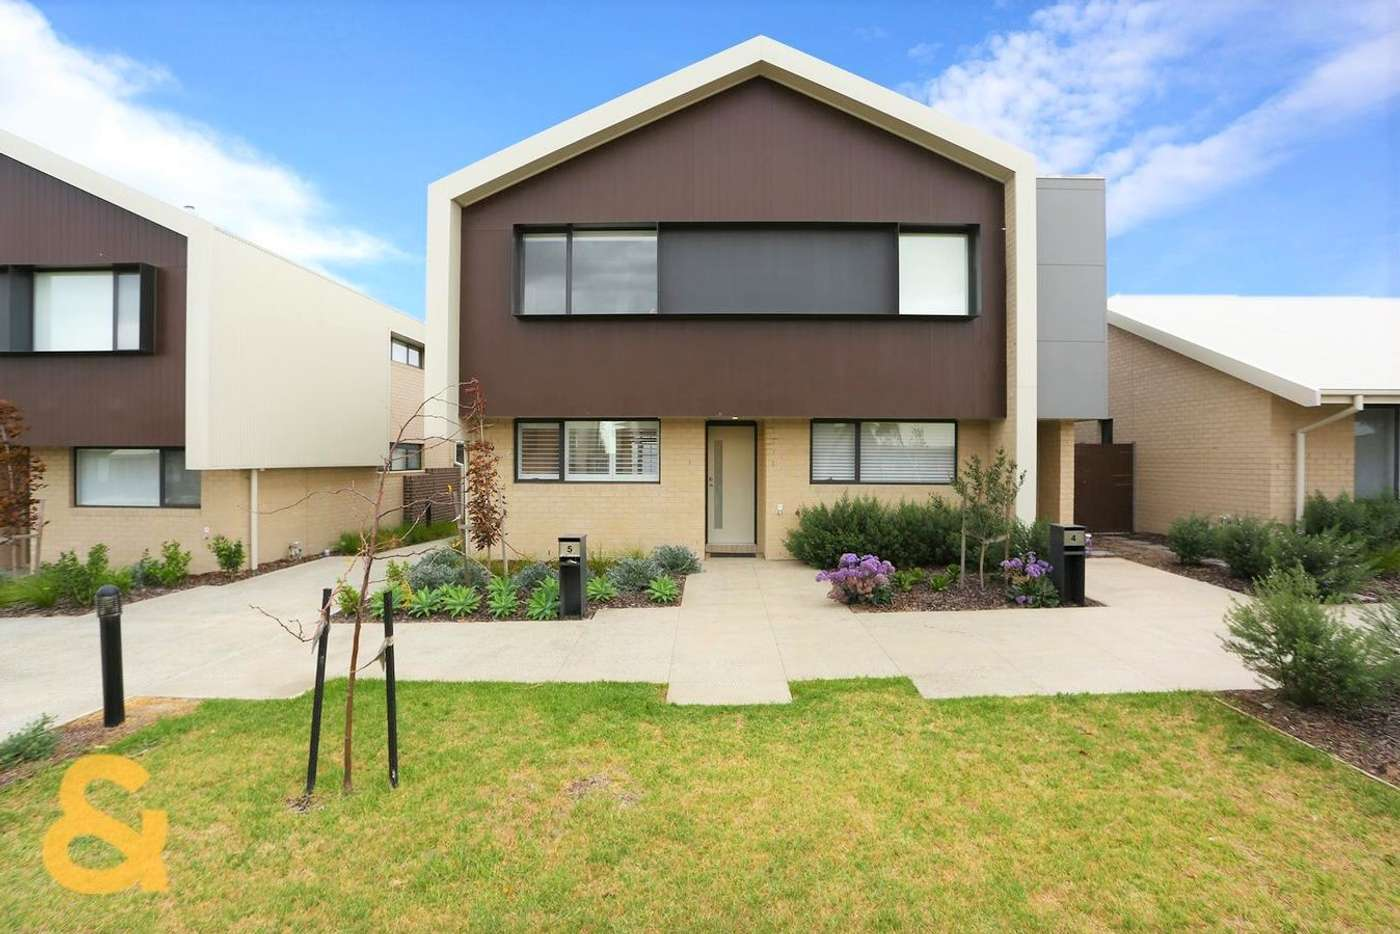 Main view of Homely townhouse listing, 5 Mezzo Walk, Greenvale VIC 3059